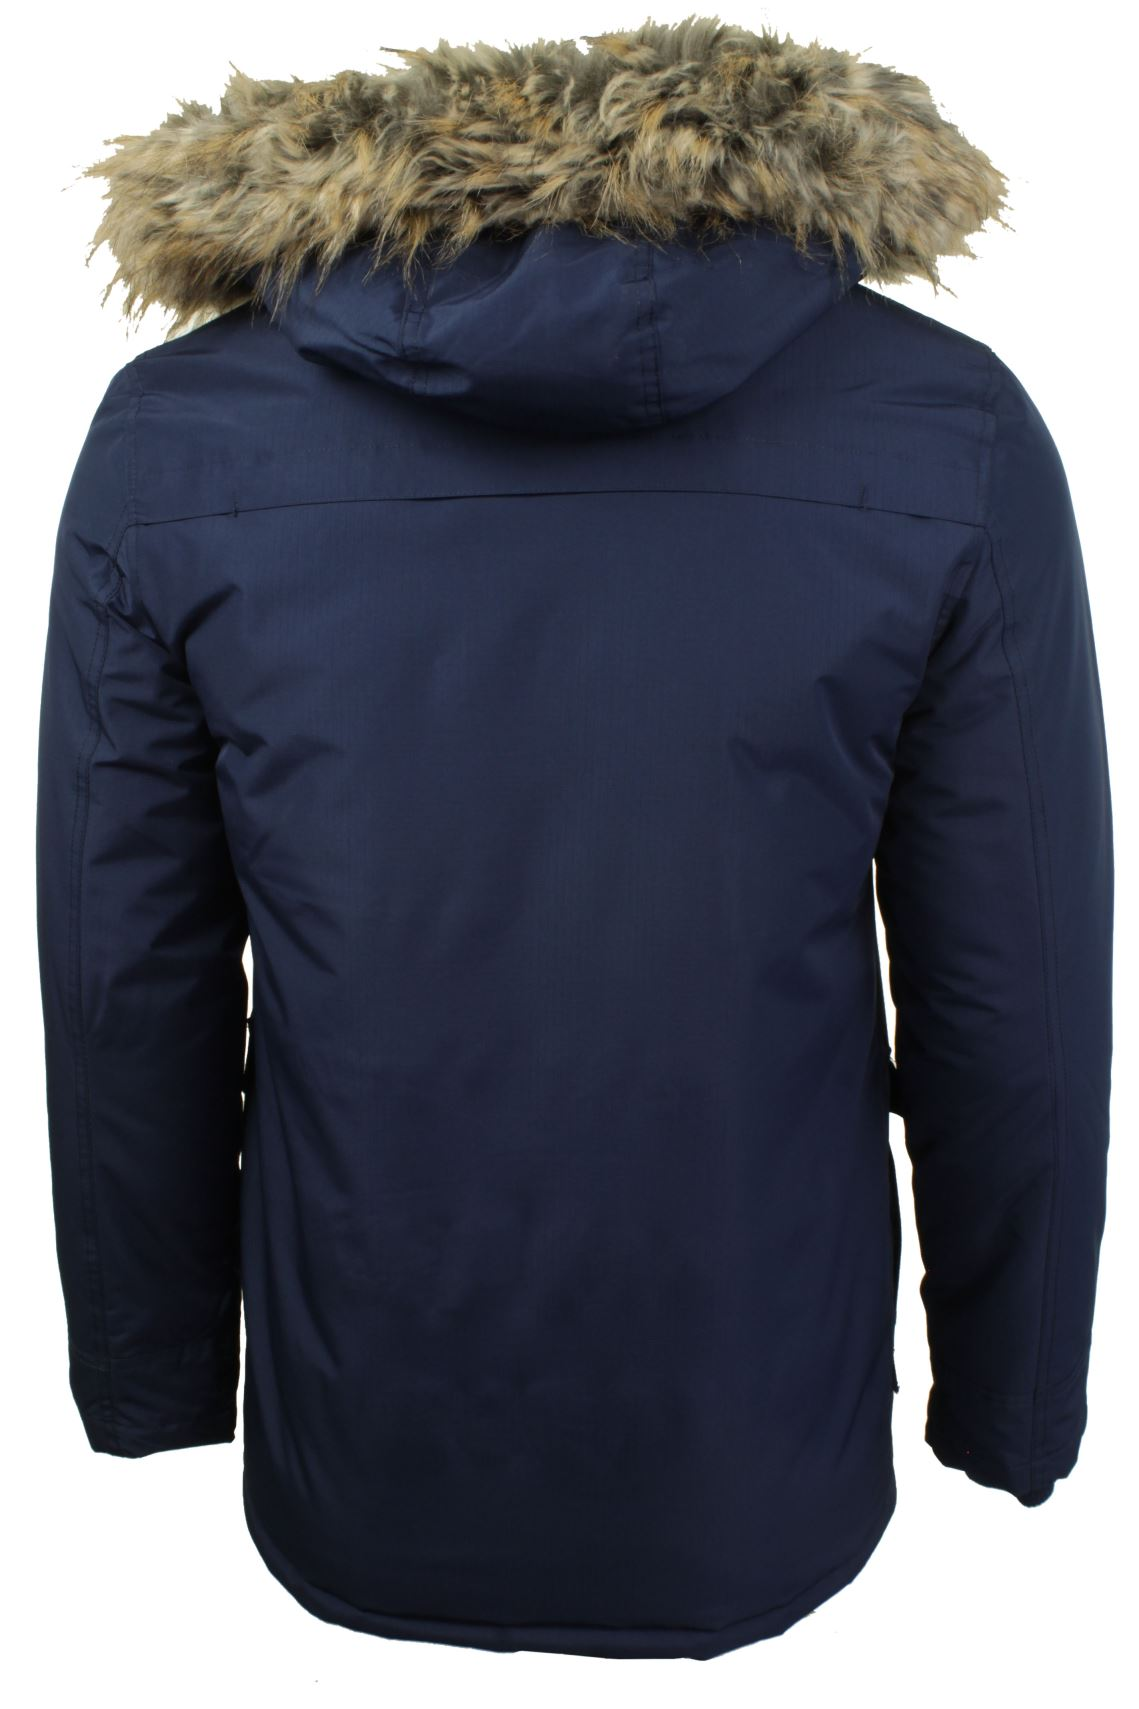 Mens RipStop Parka Jacket by Tokyo Laundry 'Ridgecrest'-3